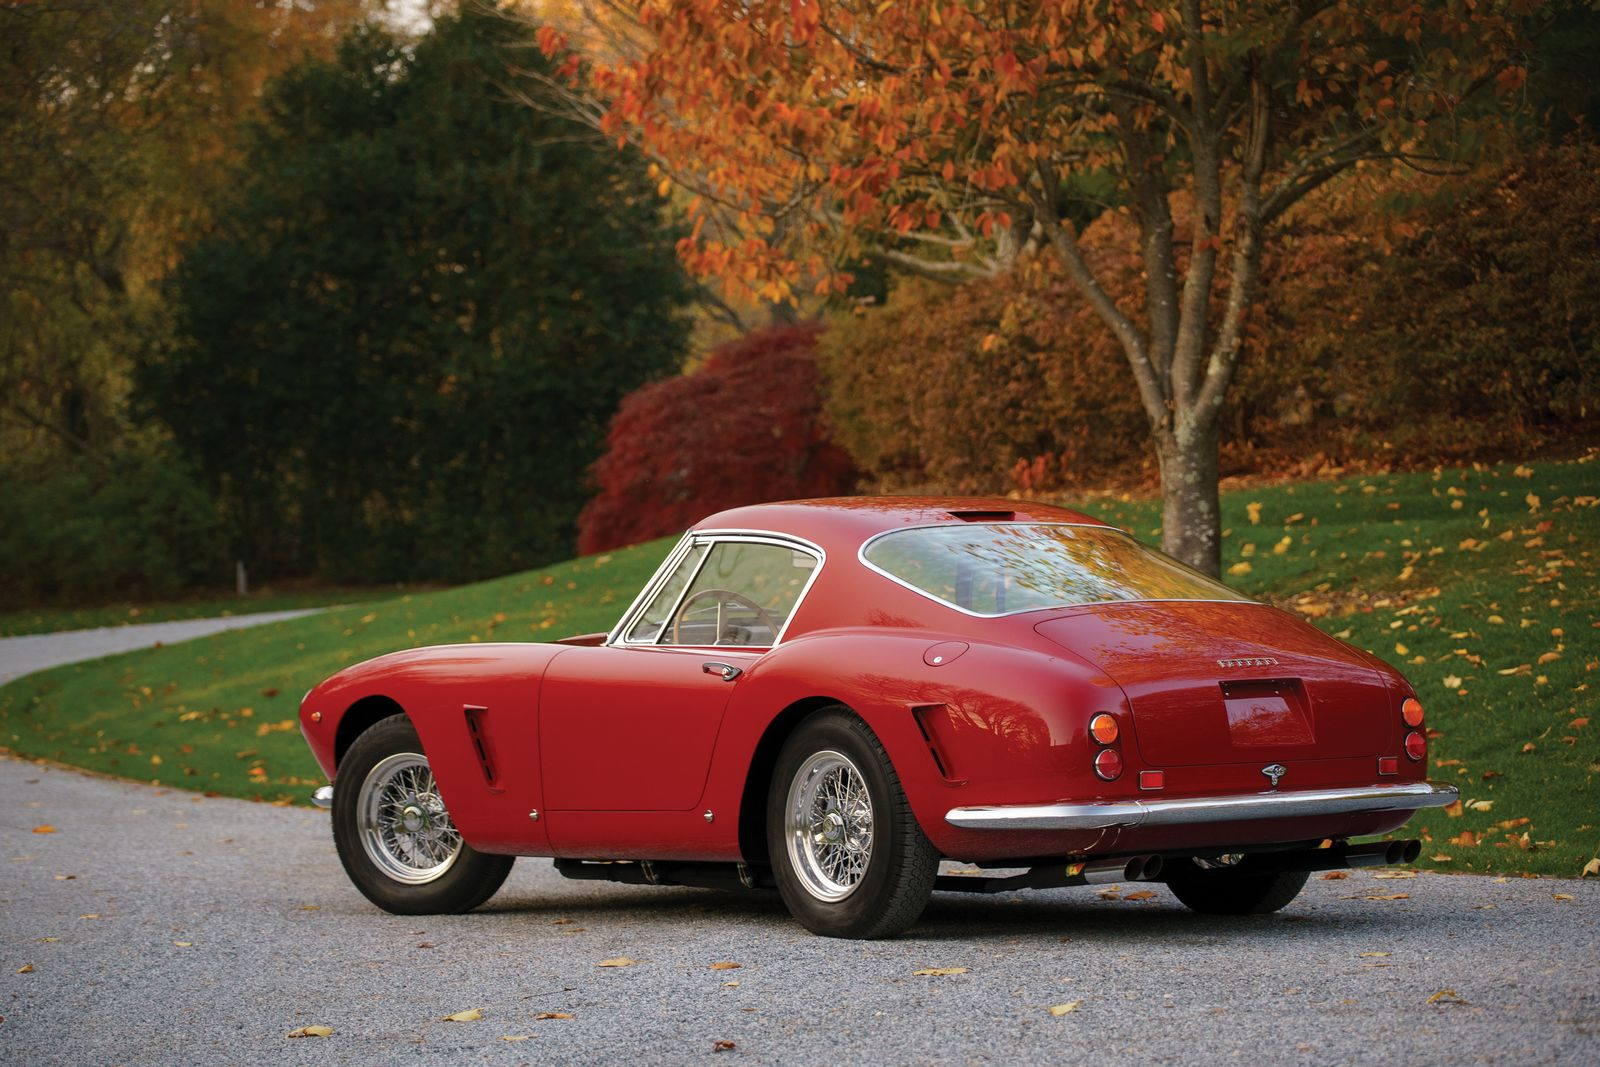 Ferrari 250 Gt Swb Berlinetta Could Fetch 10 Million At Auction